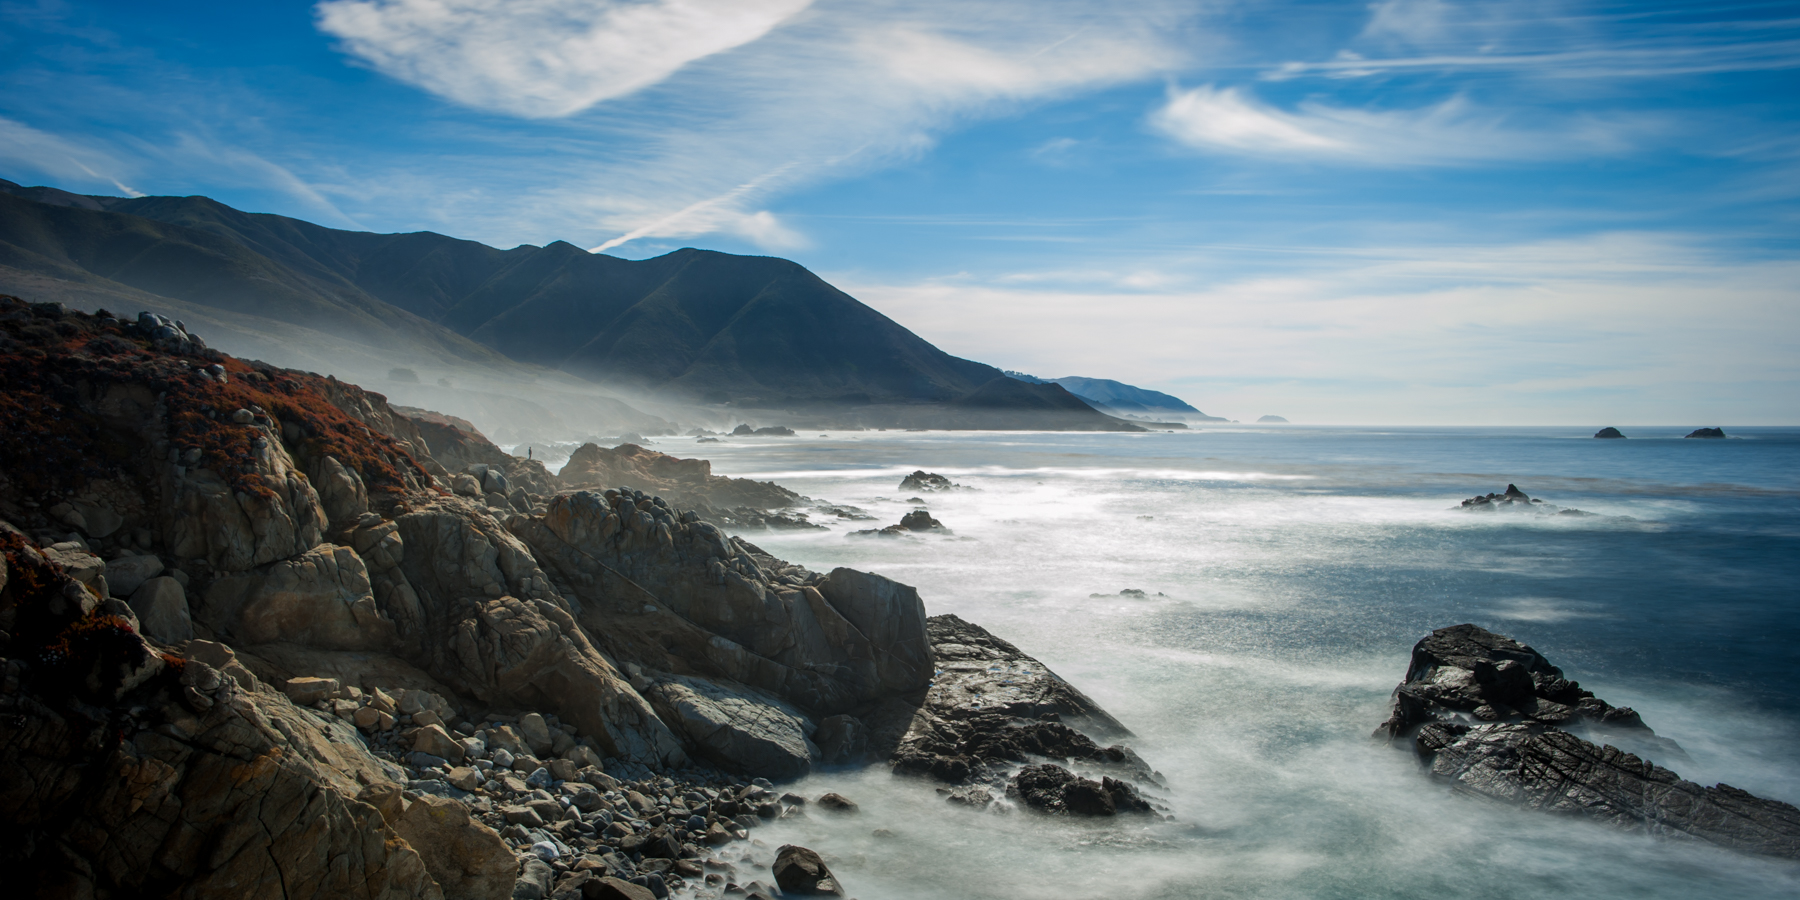 Big Sur Reverie ||  Somewhere along Highway 1 in Big Sur, a 15s long exposure of an unknown person looking out at the Pacific Ocean. ©Merima Helic